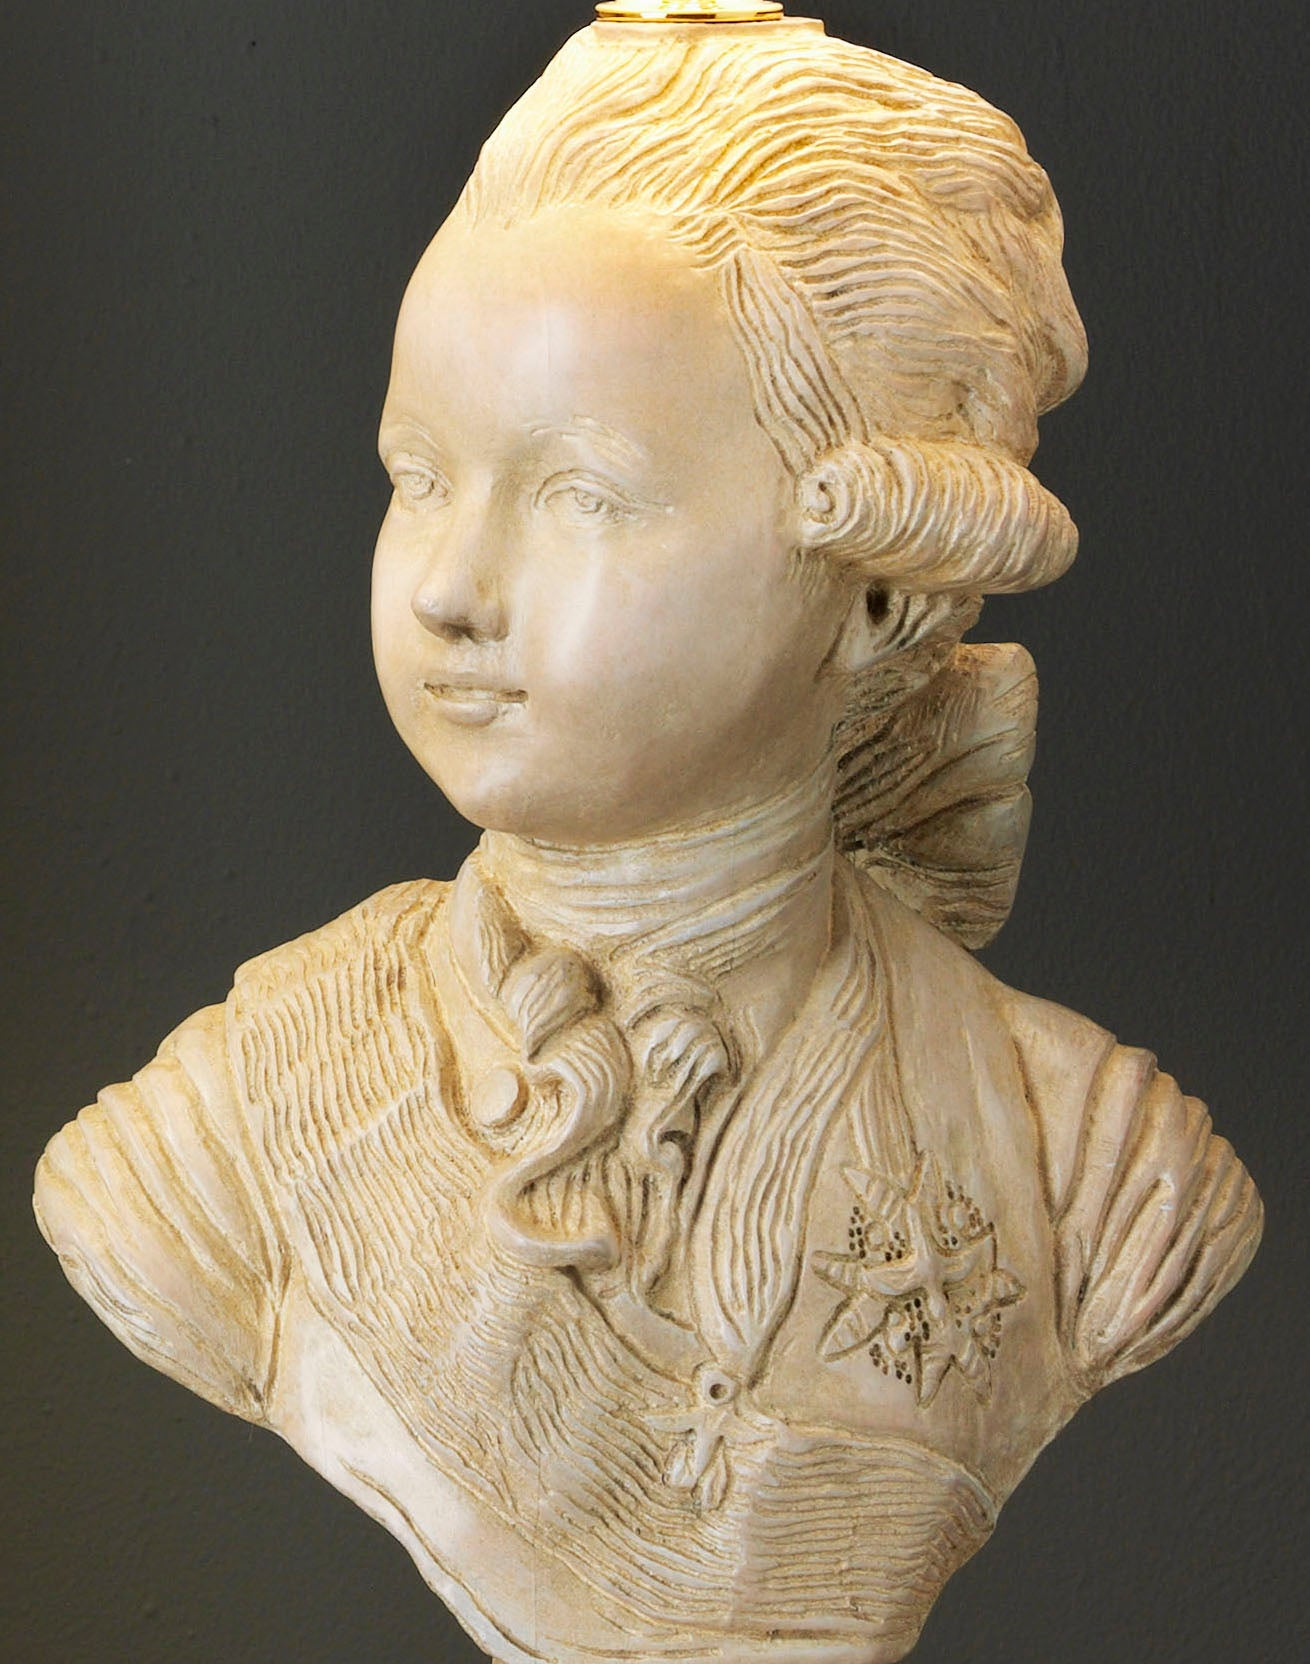 D002  A Large Portrait Fruit Wood Bust Of Louis, Dauphin / Louis XVI of France - Circa 1950's